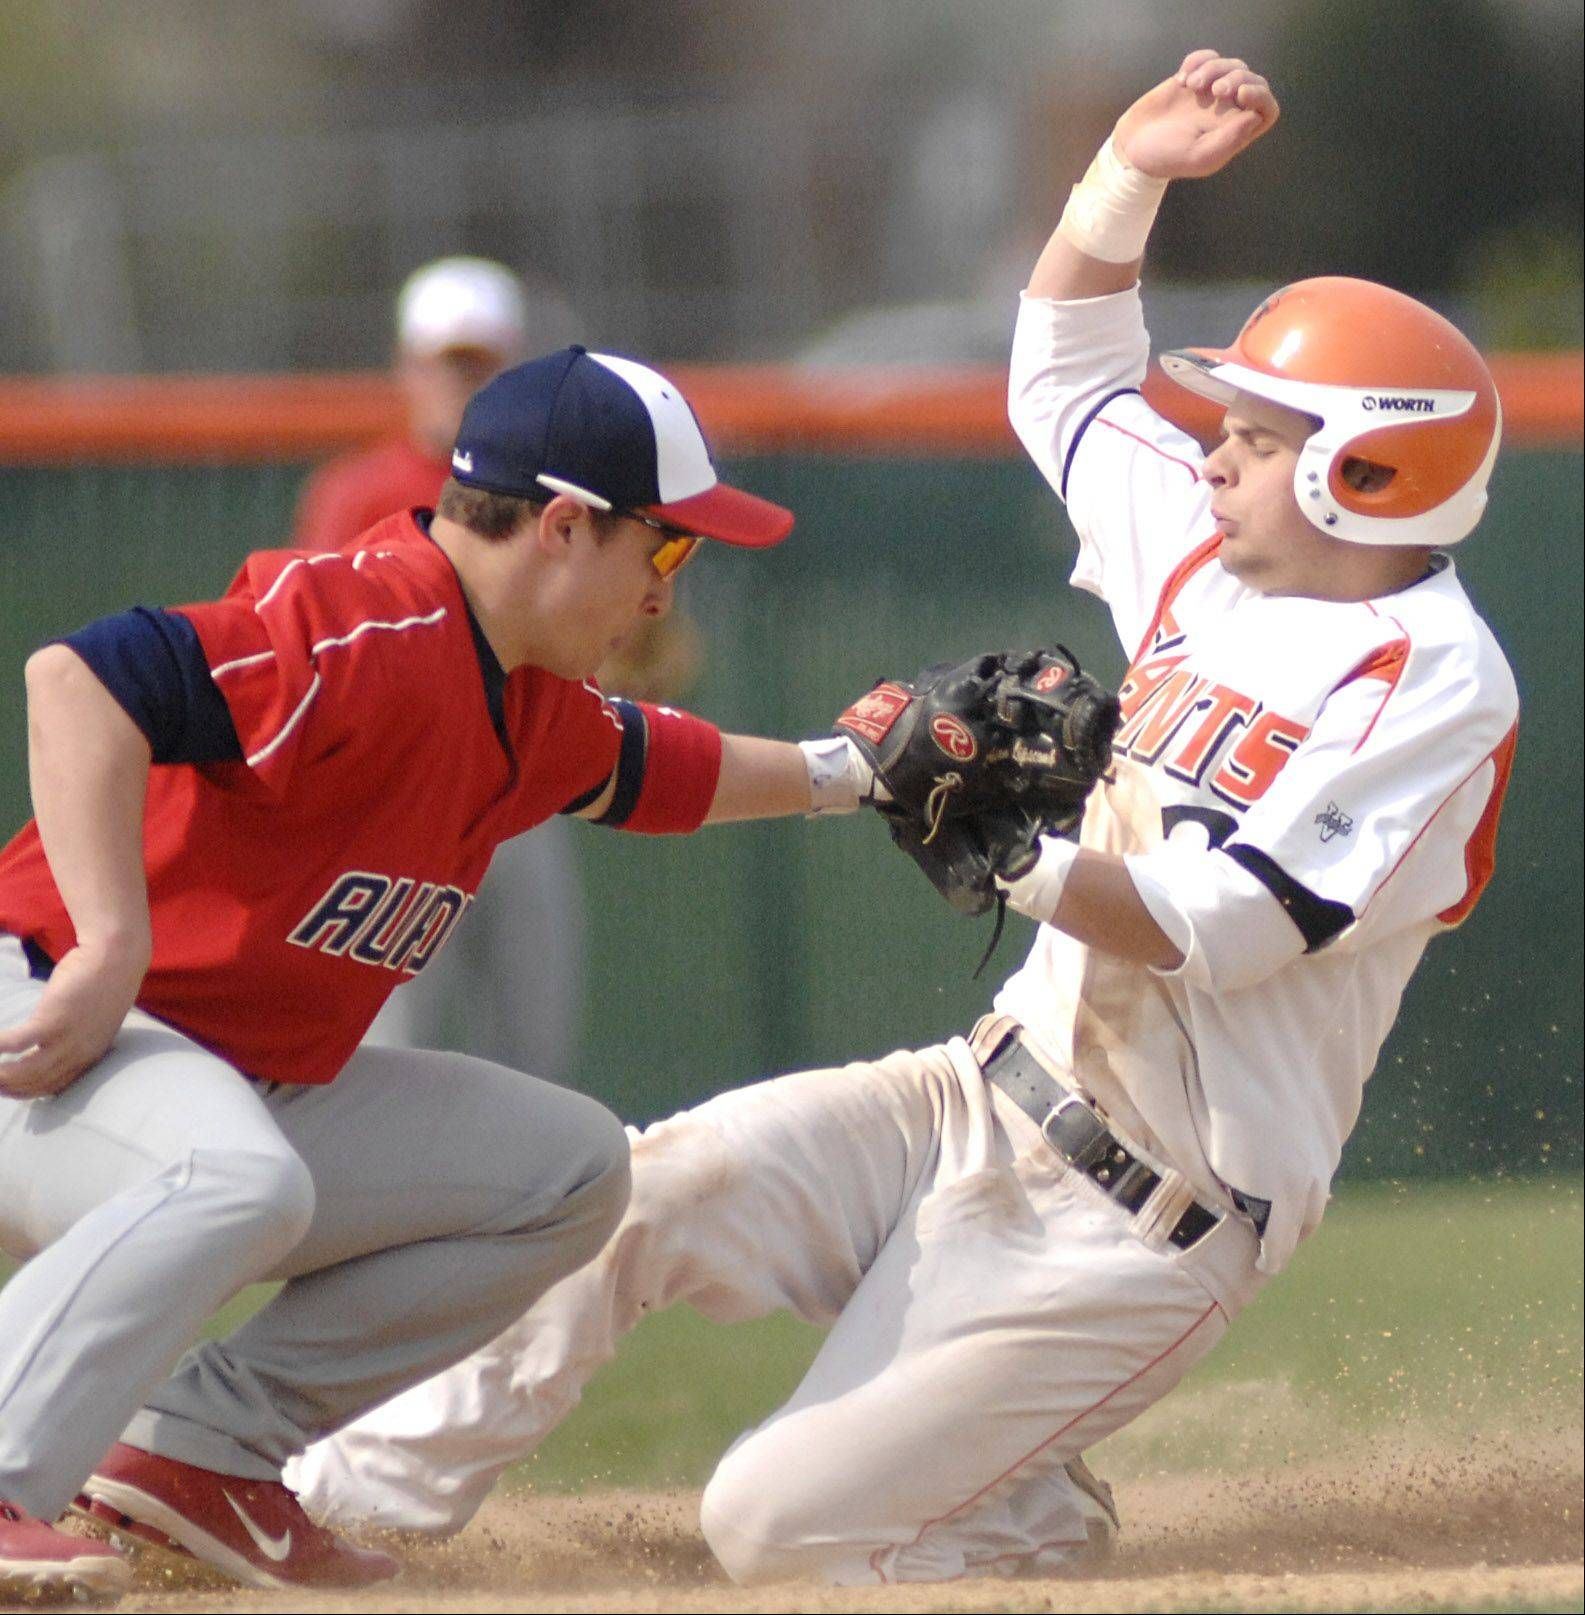 St. Charles East's Nicholas Erickson is safe at second as West Aurora's Adam Lipscomb attempts the tag during Tuesday's baseball game.